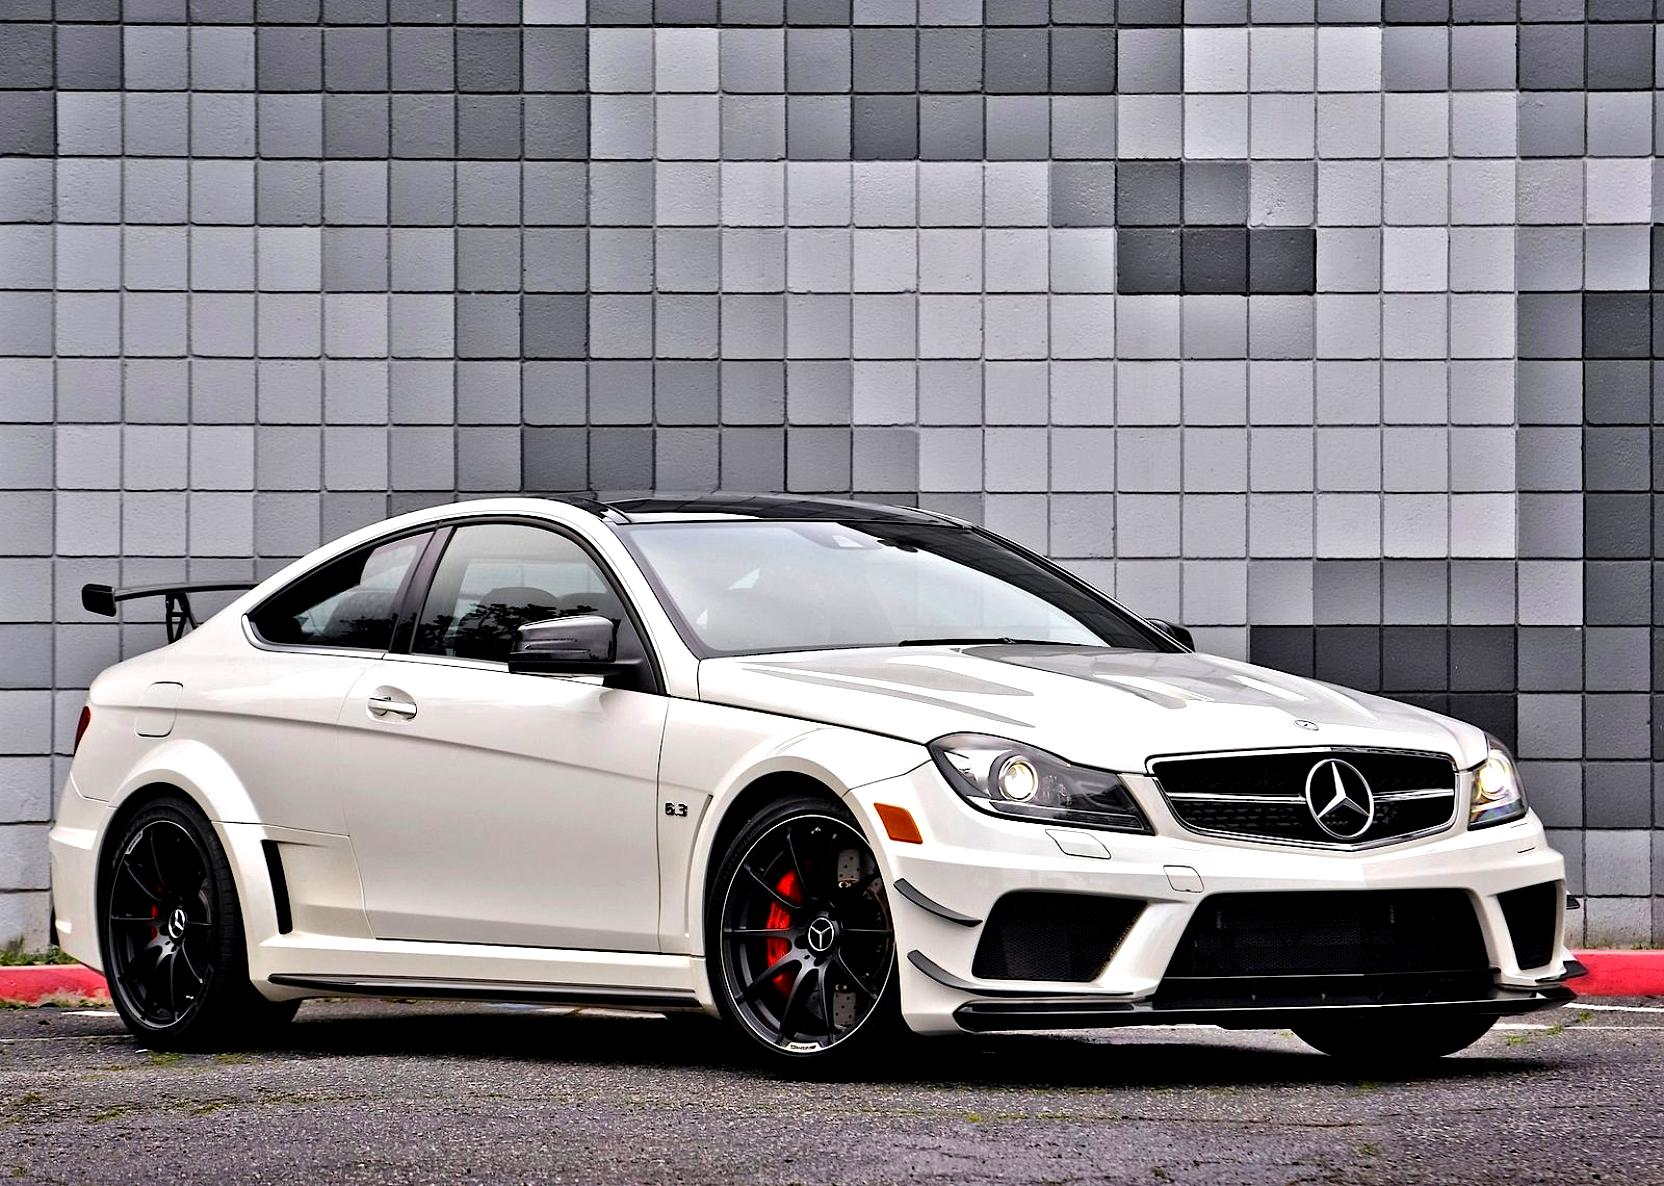 c63 amg 0 60 images of amg 6 mercedes c63 amg 0 60 tag for c63 amg coupe black series dtm. Black Bedroom Furniture Sets. Home Design Ideas